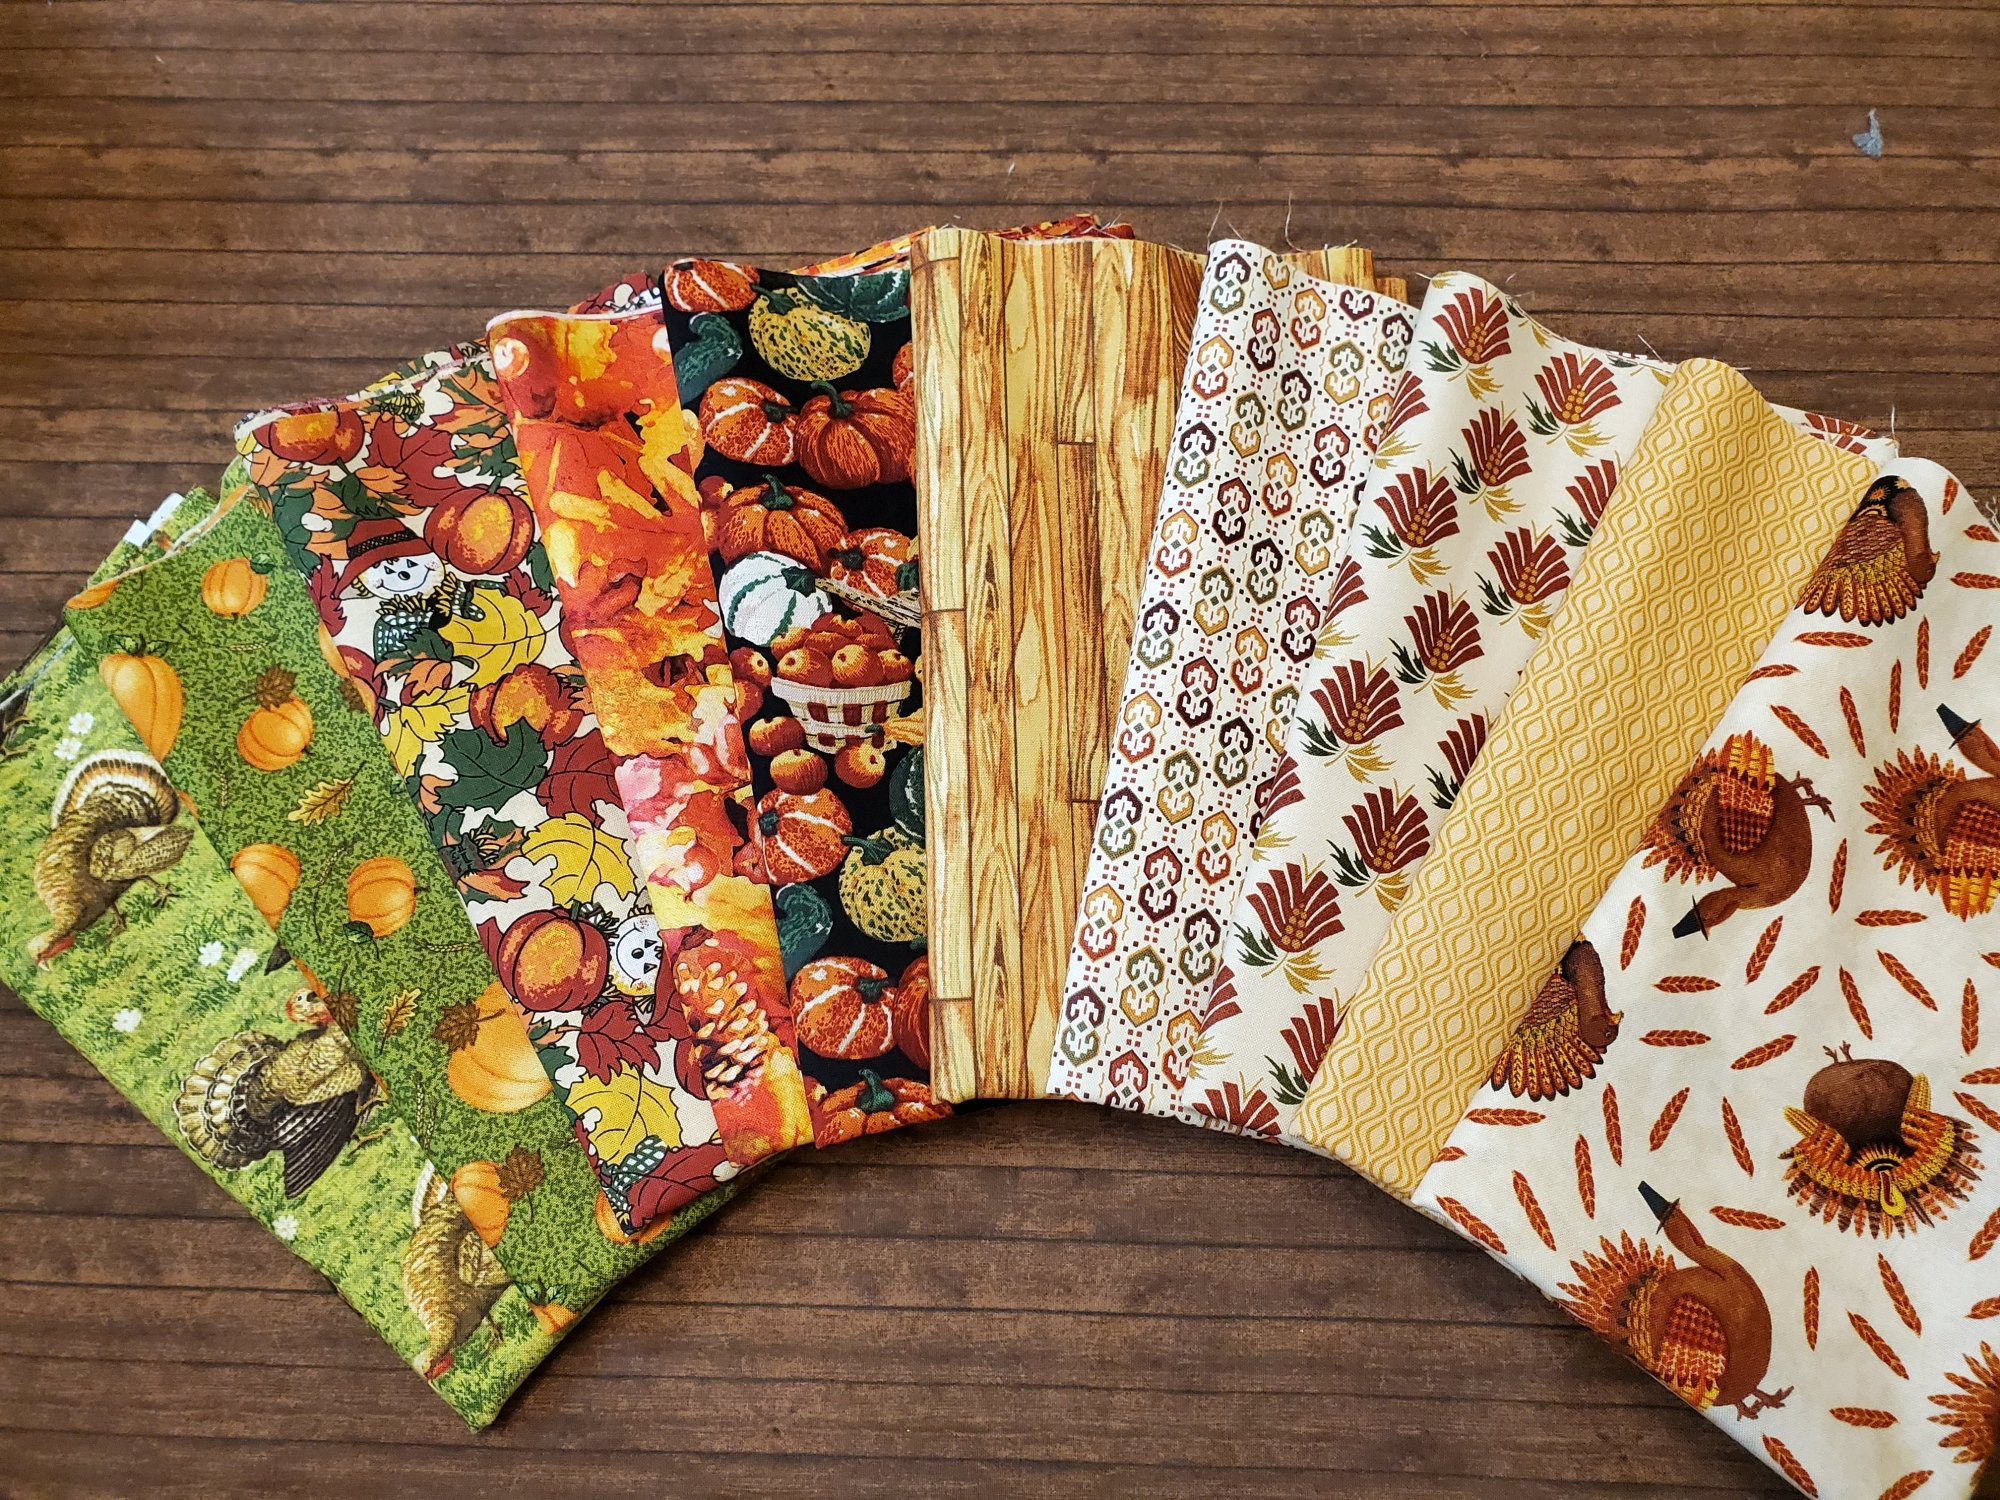 Mixed Turkeys and More - by Paintbrush Studios and more -10 Piece Half Yard Bundle Pack